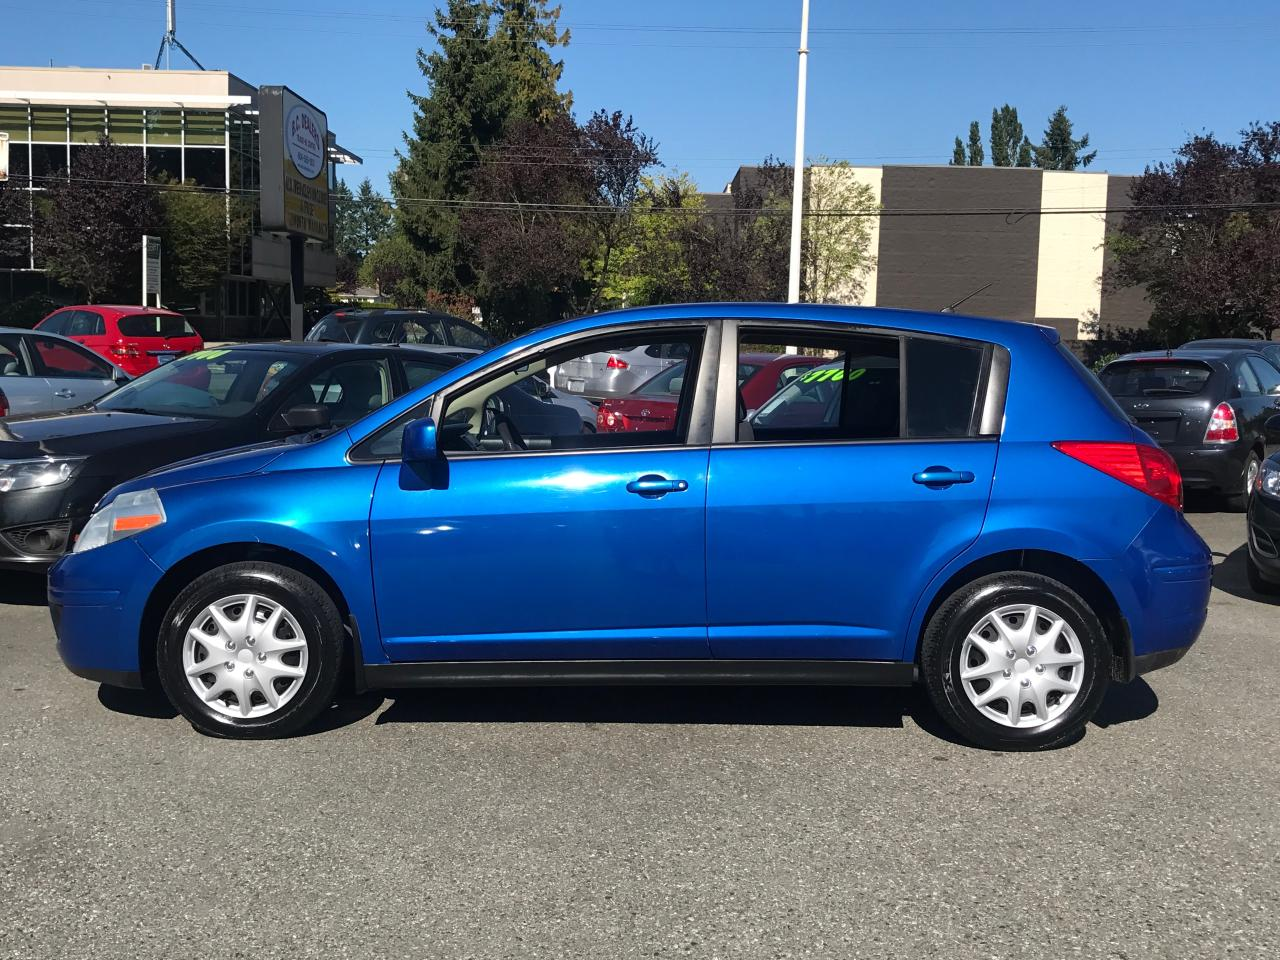 used 2008 nissan versa 1 8 s local bc car automatic rare colour clean for sale in surrey. Black Bedroom Furniture Sets. Home Design Ideas